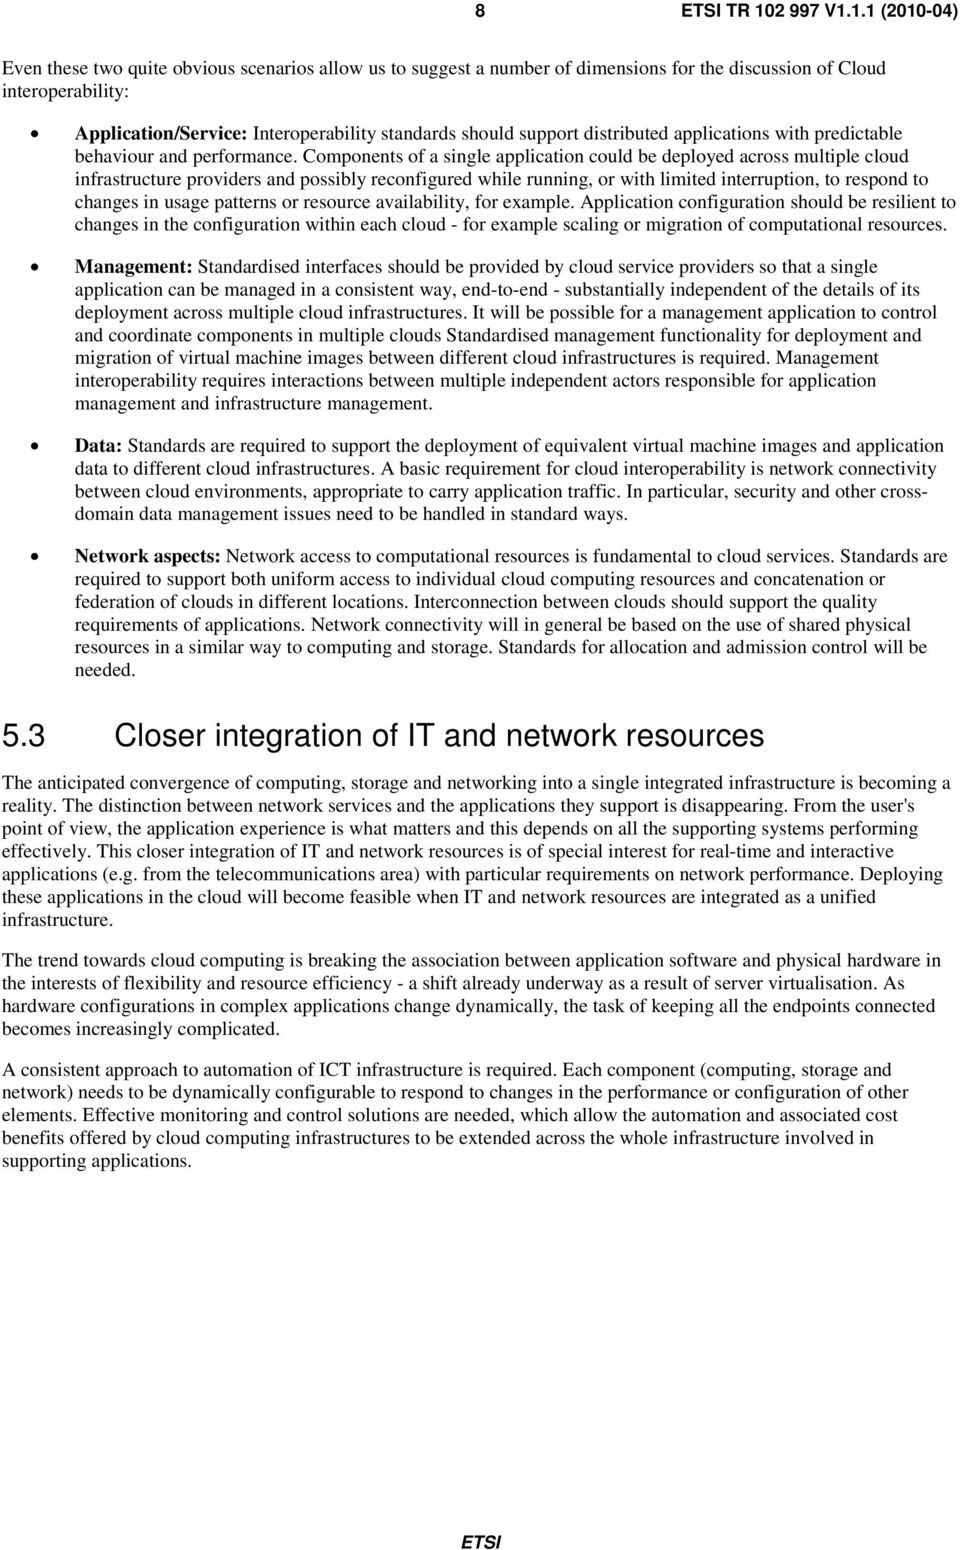 1.1 (2010-04) Even these two quite obvious scenarios allow us to suggest a number of dimensions for the discussion of Cloud interoperability: Application/Service: Interoperability standards should